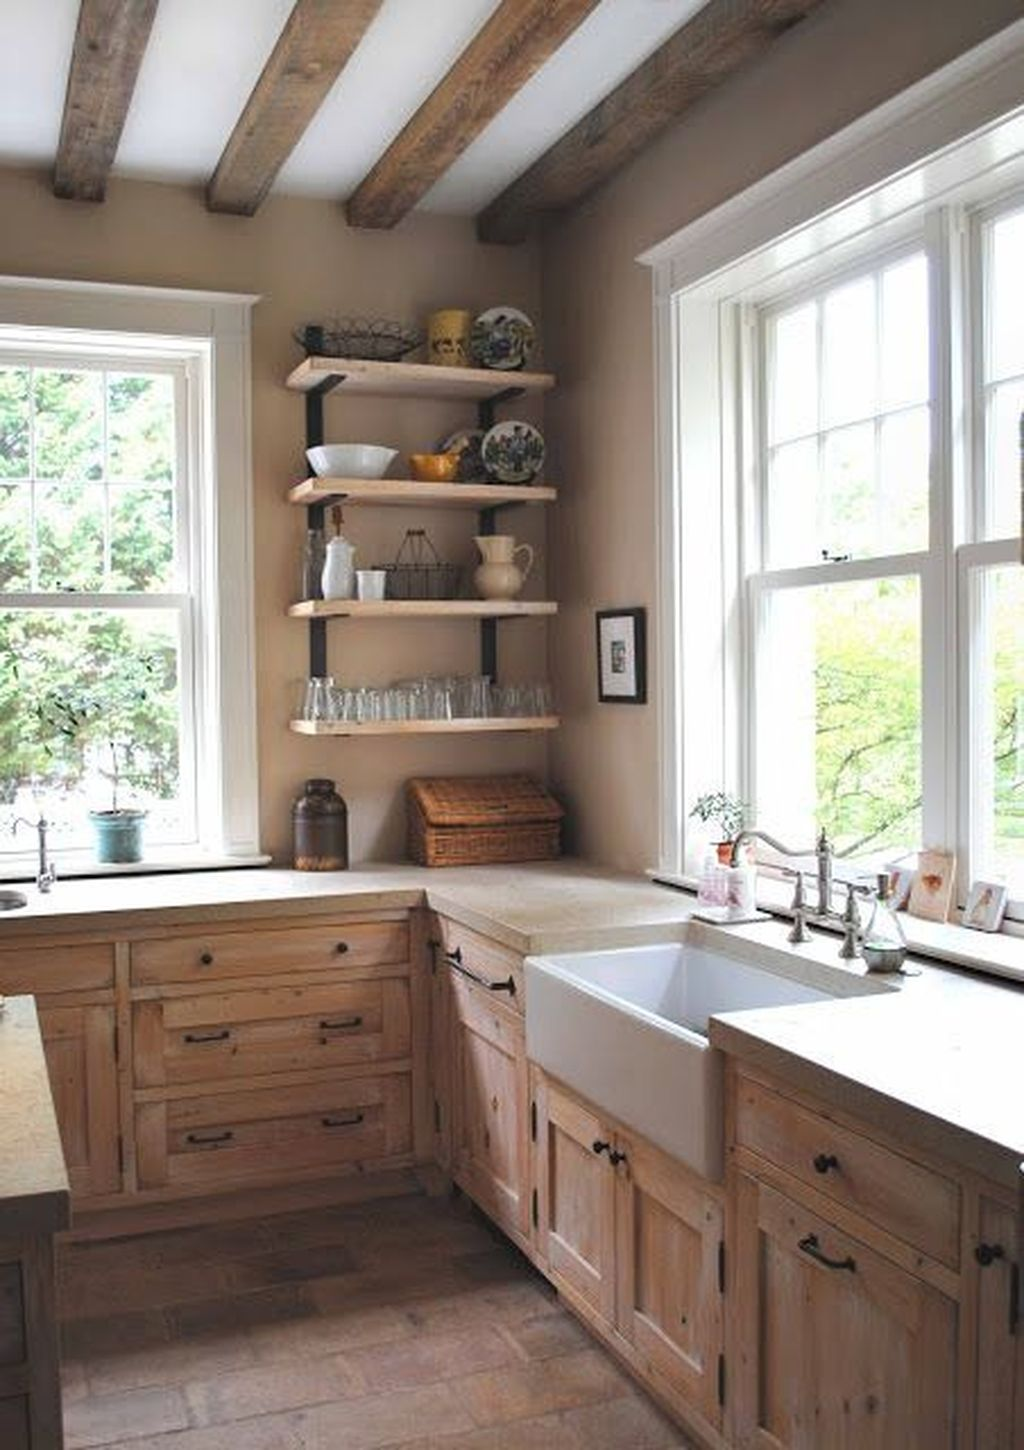 Popular Wooden Cabinets Design Ideas For Your Kitchen Decor 15